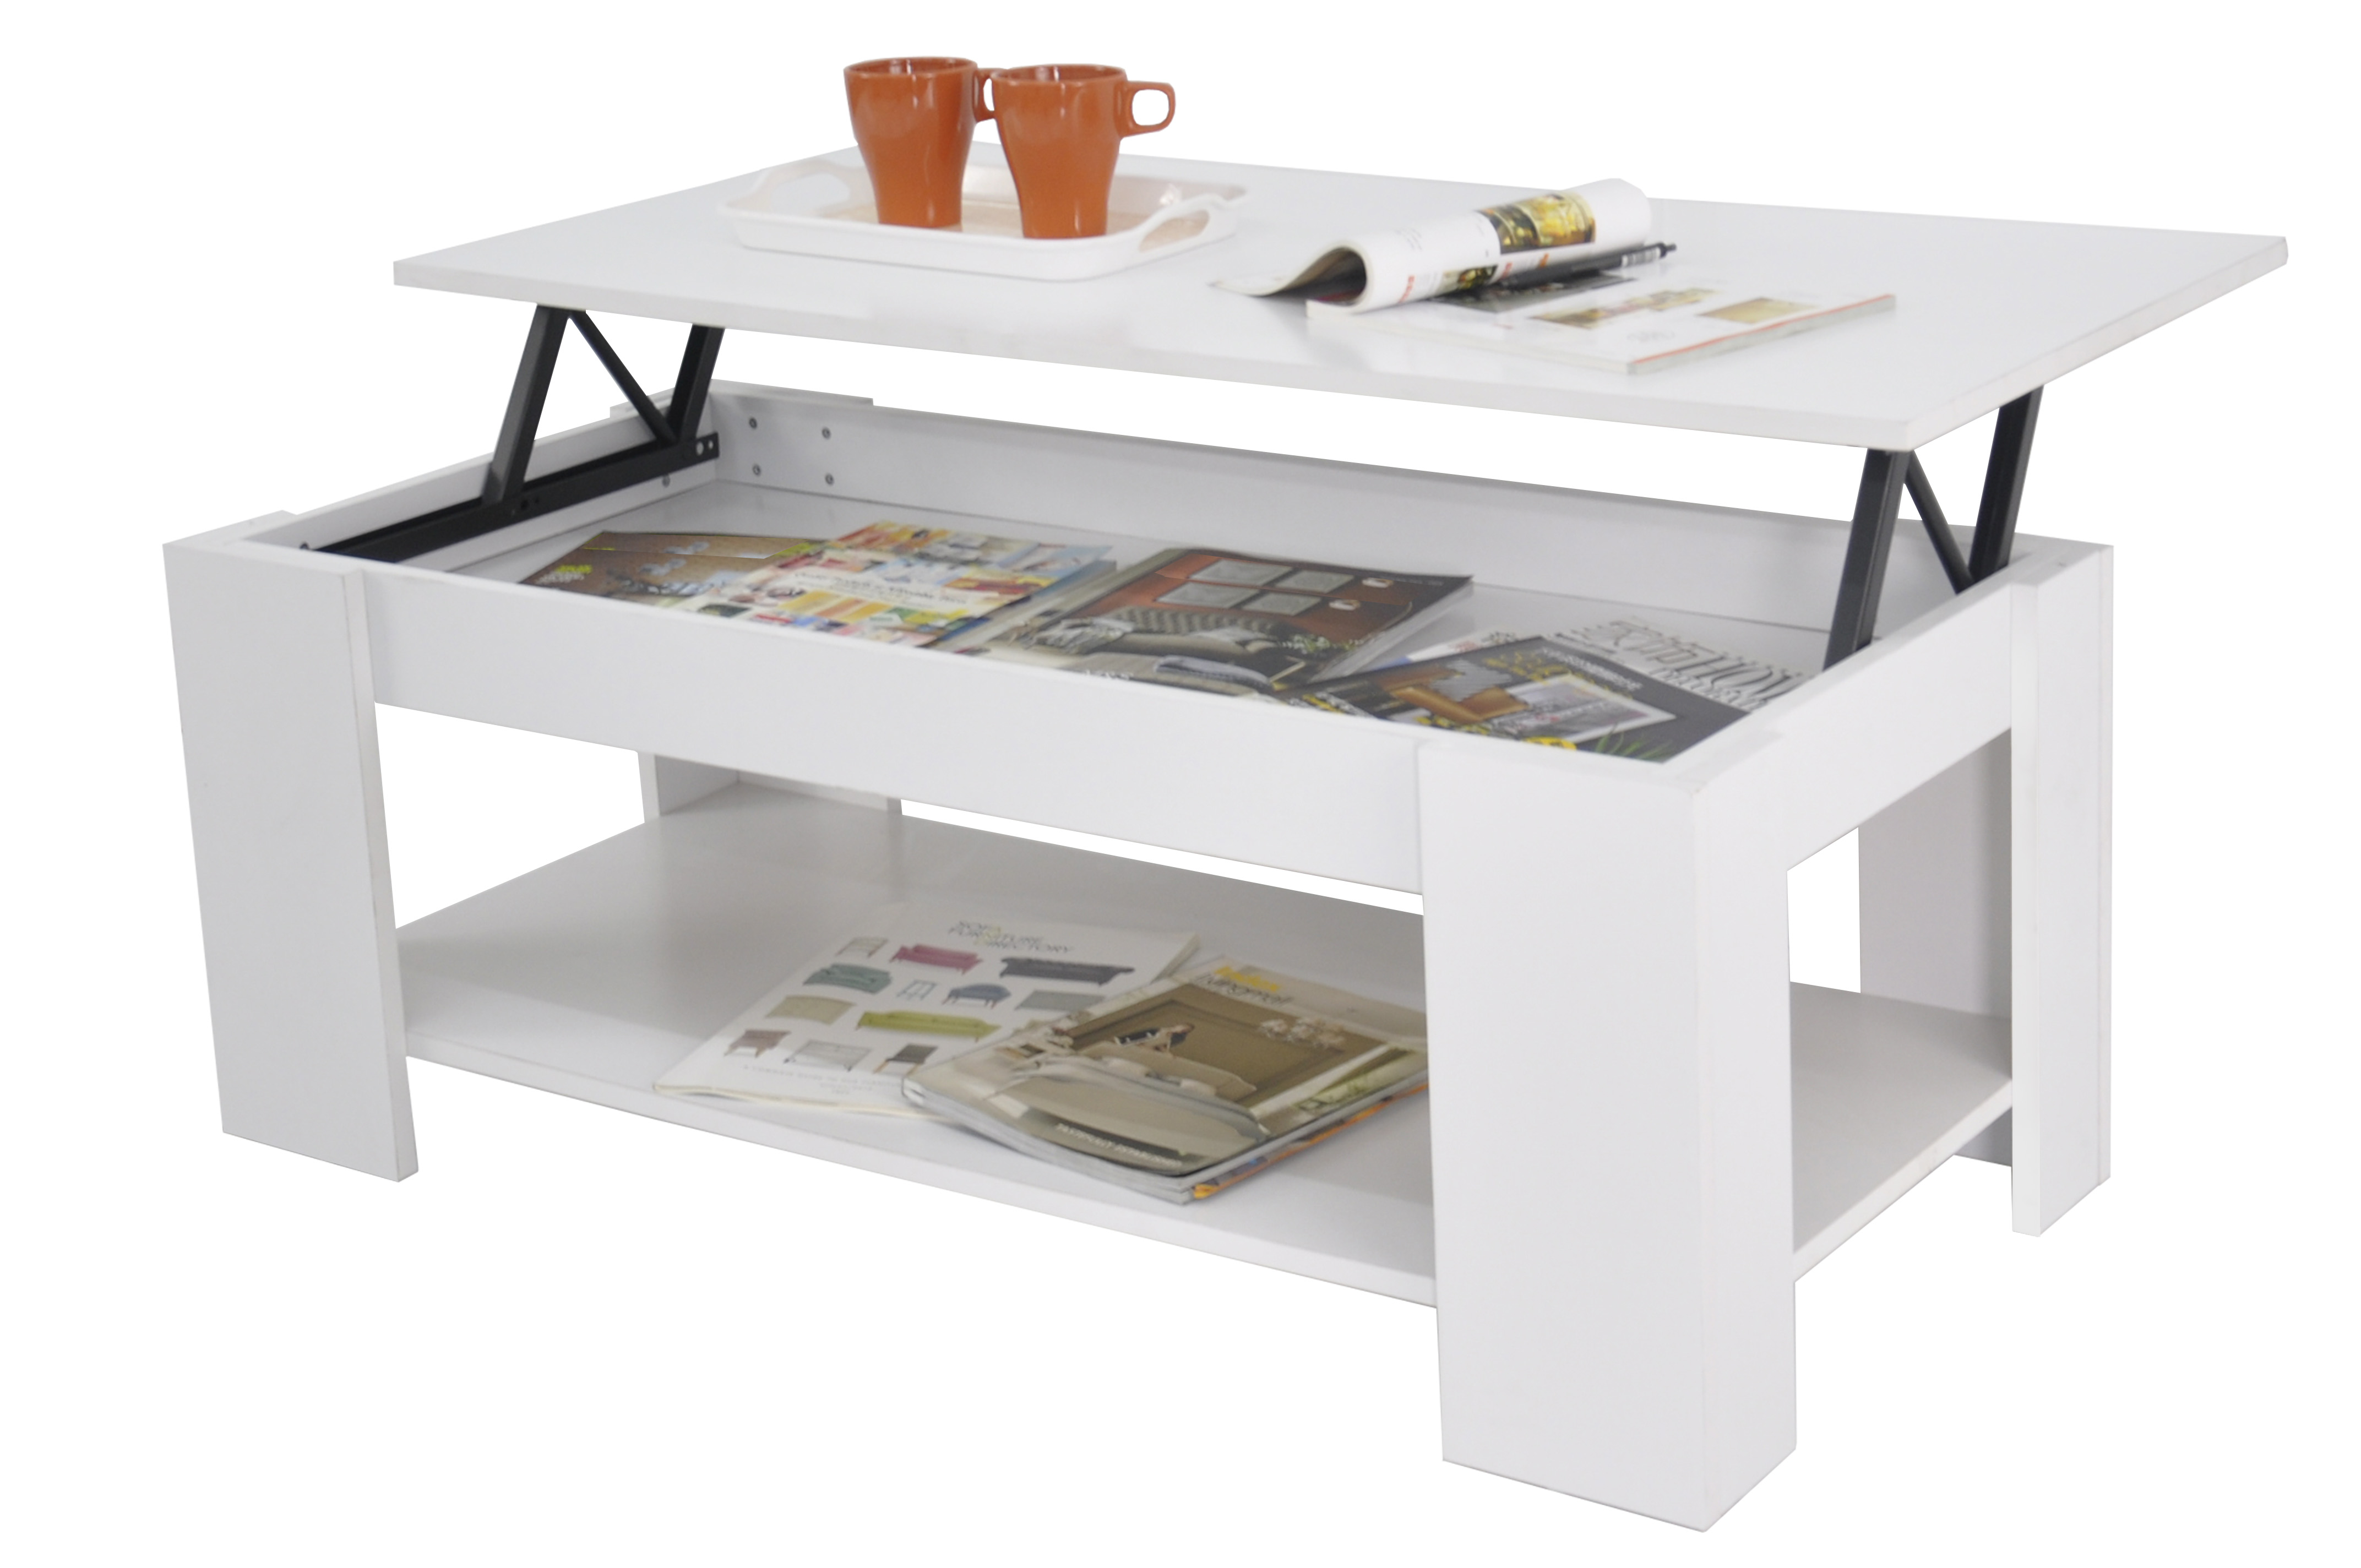 New Kimberly Lift Up Top Coffee Table With Storage Shelf White Ebay